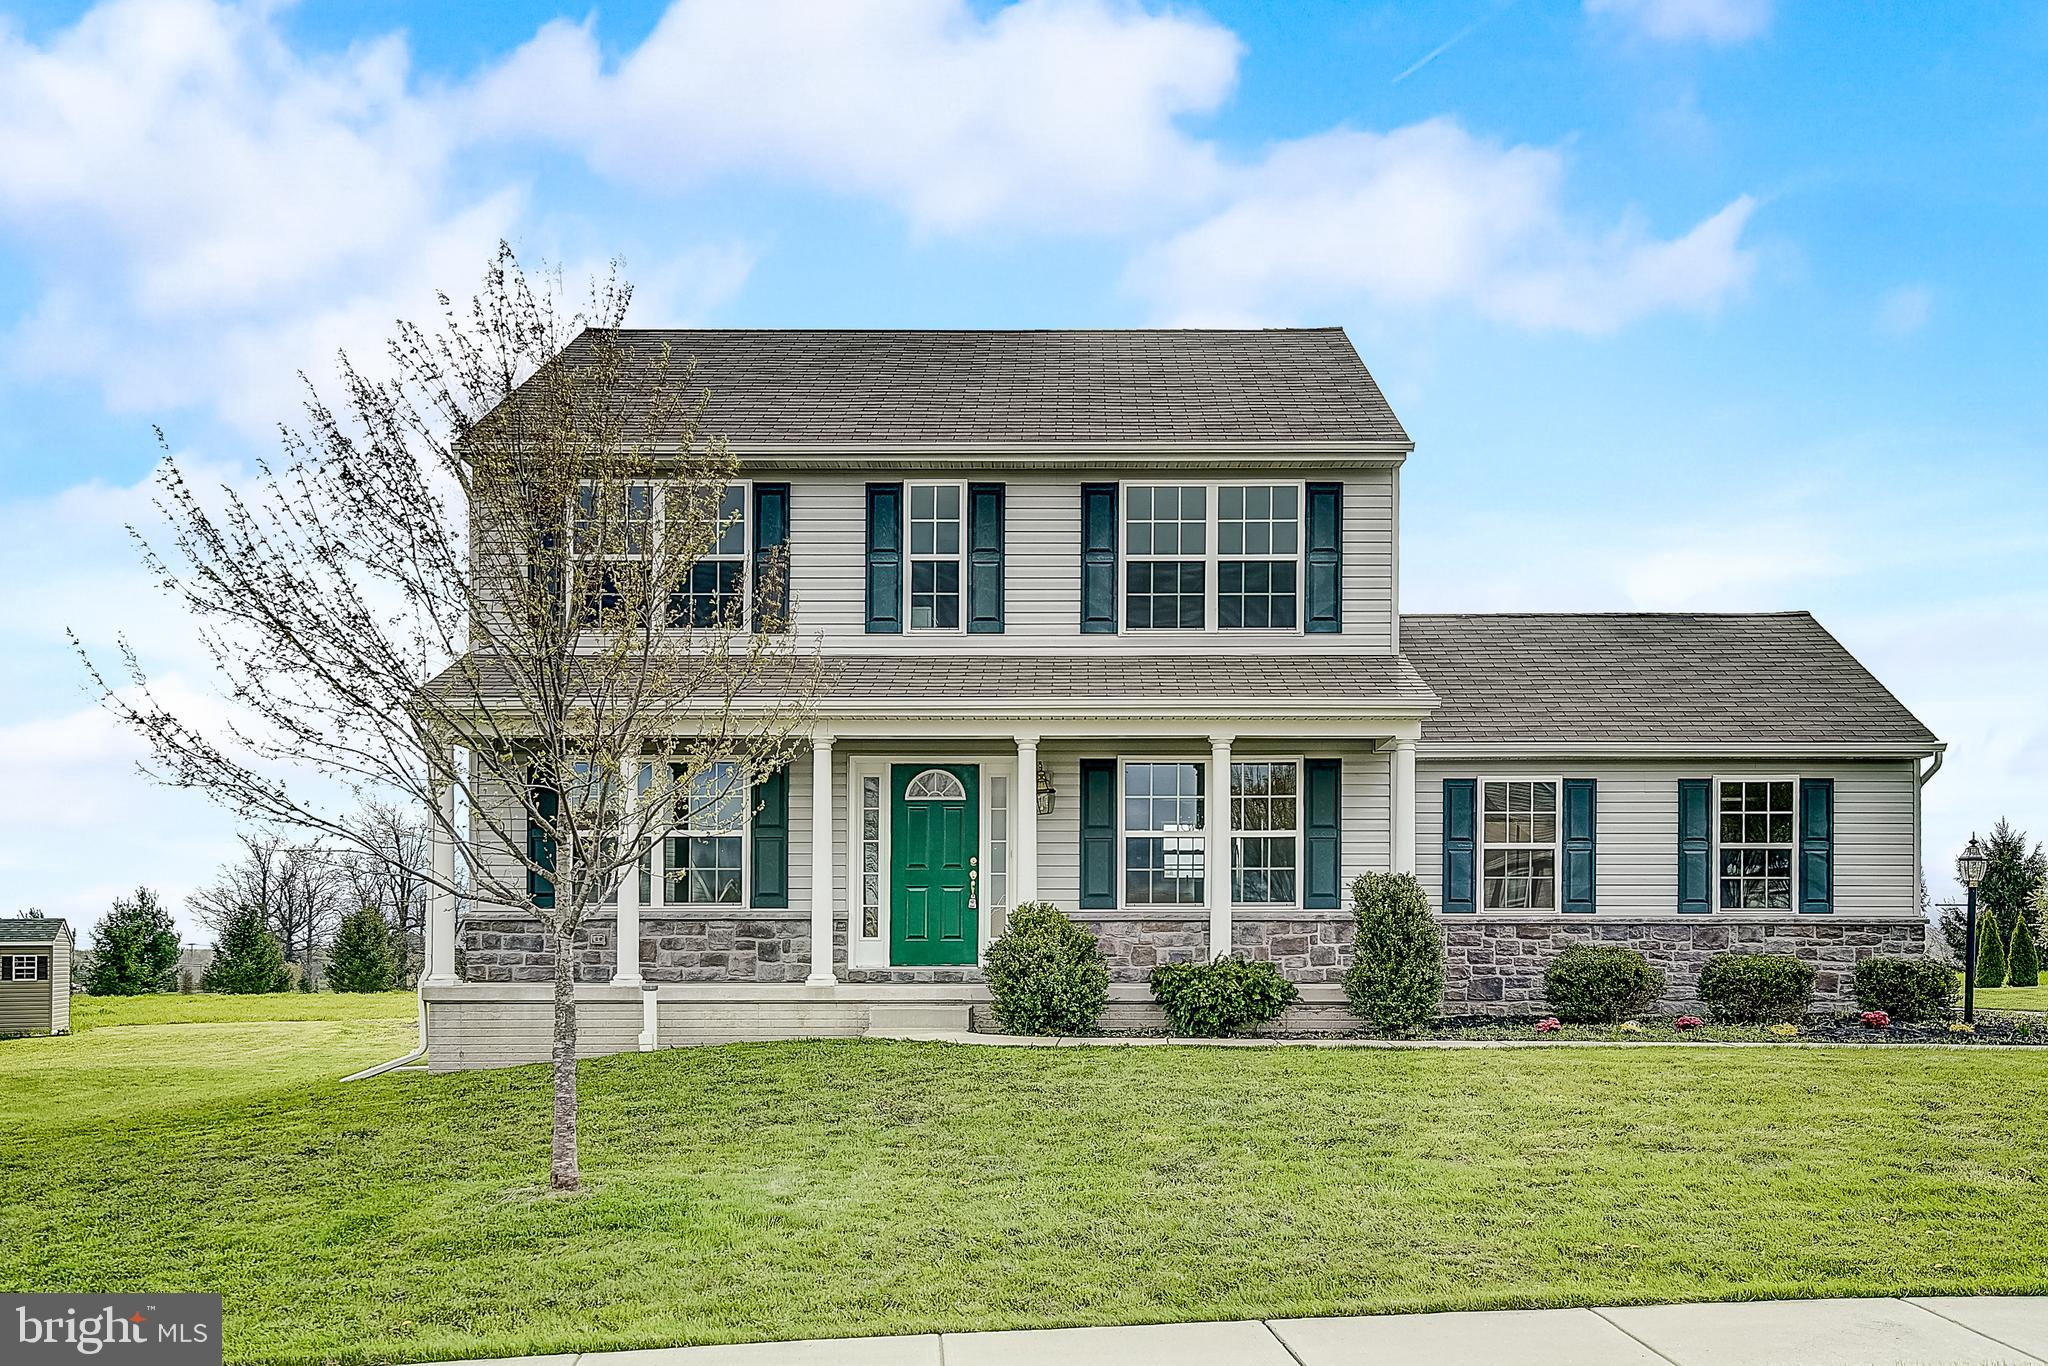 107 WHITEHORSE DRIVE, HONEY BROOK, PA 19344